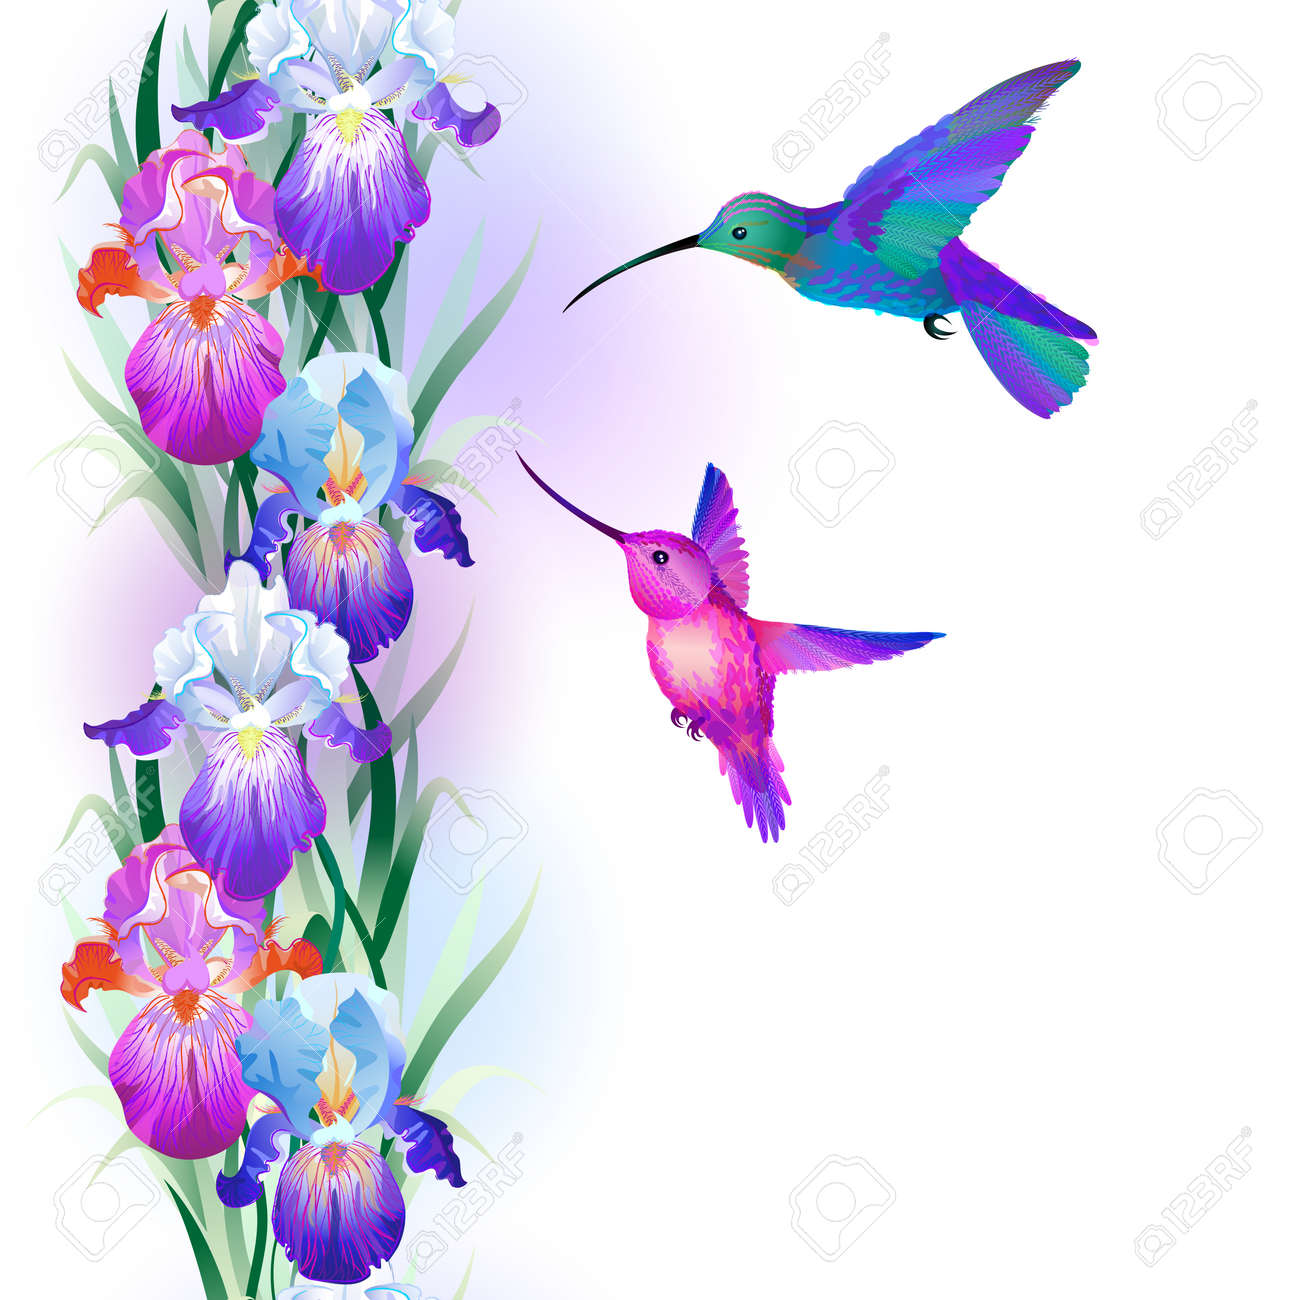 5455 iris flower stock illustrations cliparts and royalty free seamless pattern with bright multicolored iris flowers and hummingbirds pronofoot35fo Image collections